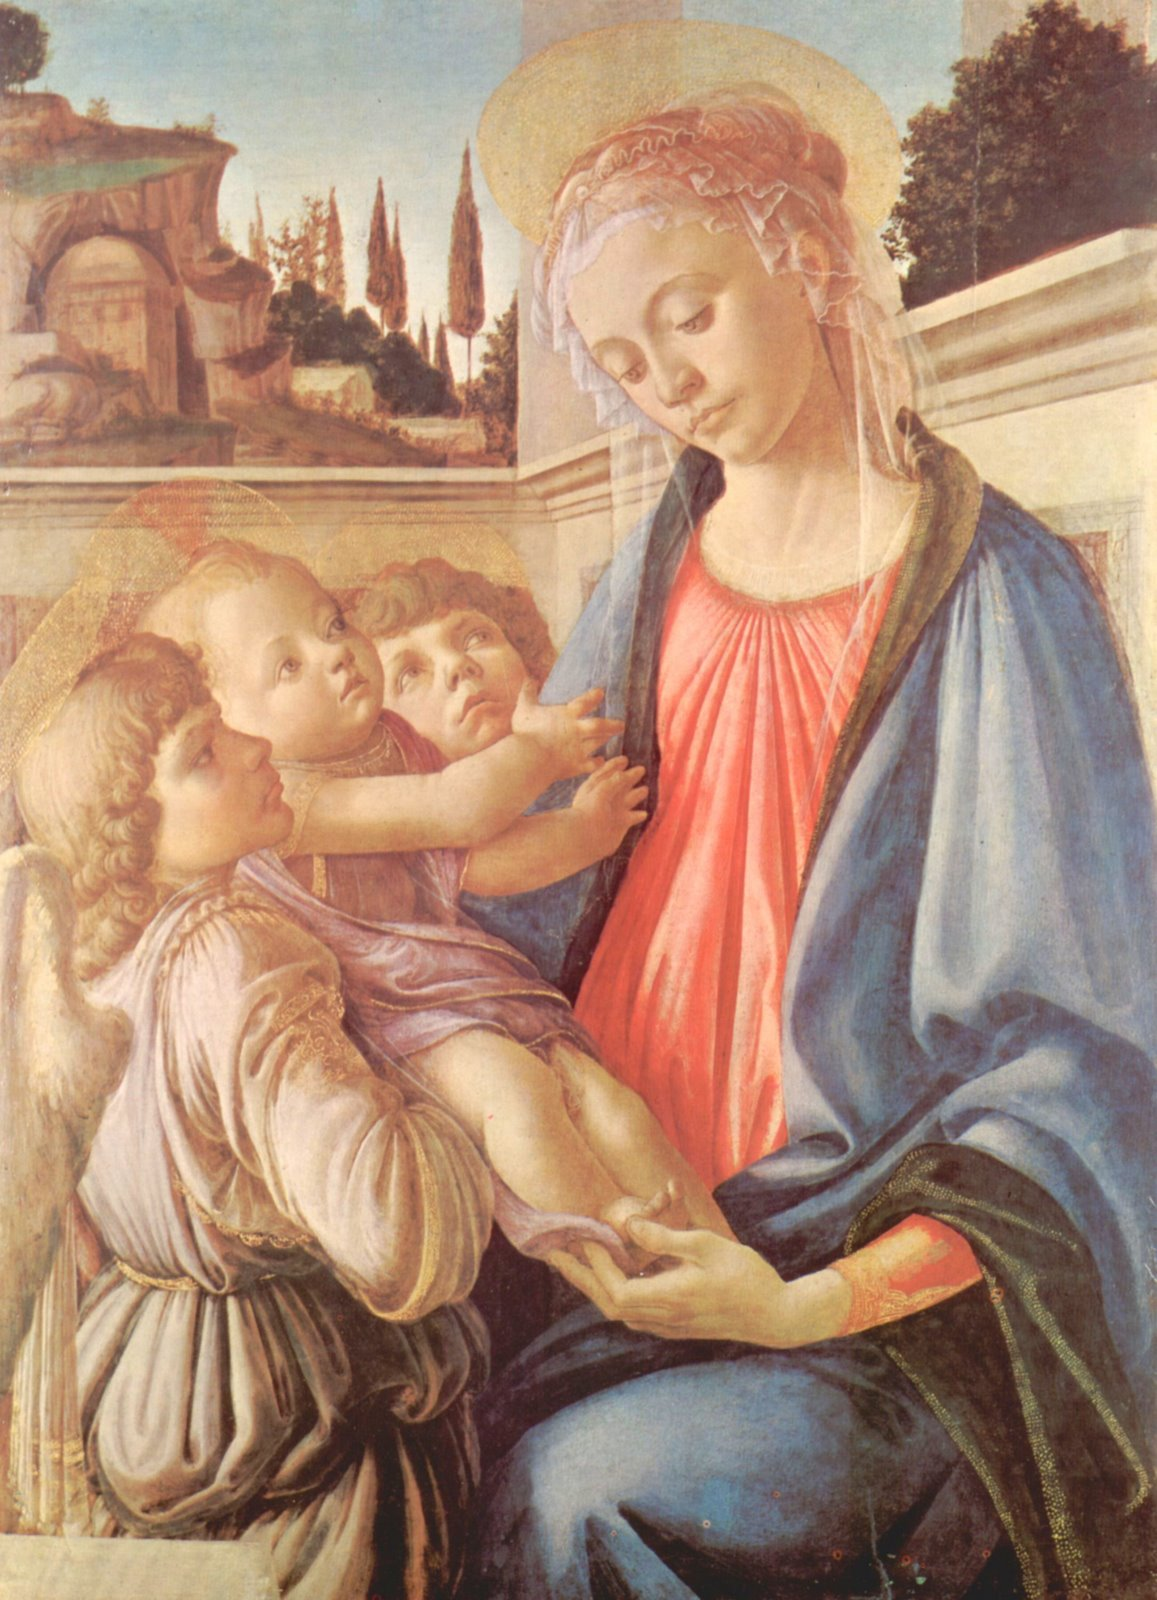 http://1.bp.blogspot.com/_MX_HfIdEzvs/TDeNrnydycI/AAAAAAAAAf4/qgtxtZid4o0/s1600/Madonna_and_two_angels_by_Botticelli.jpg